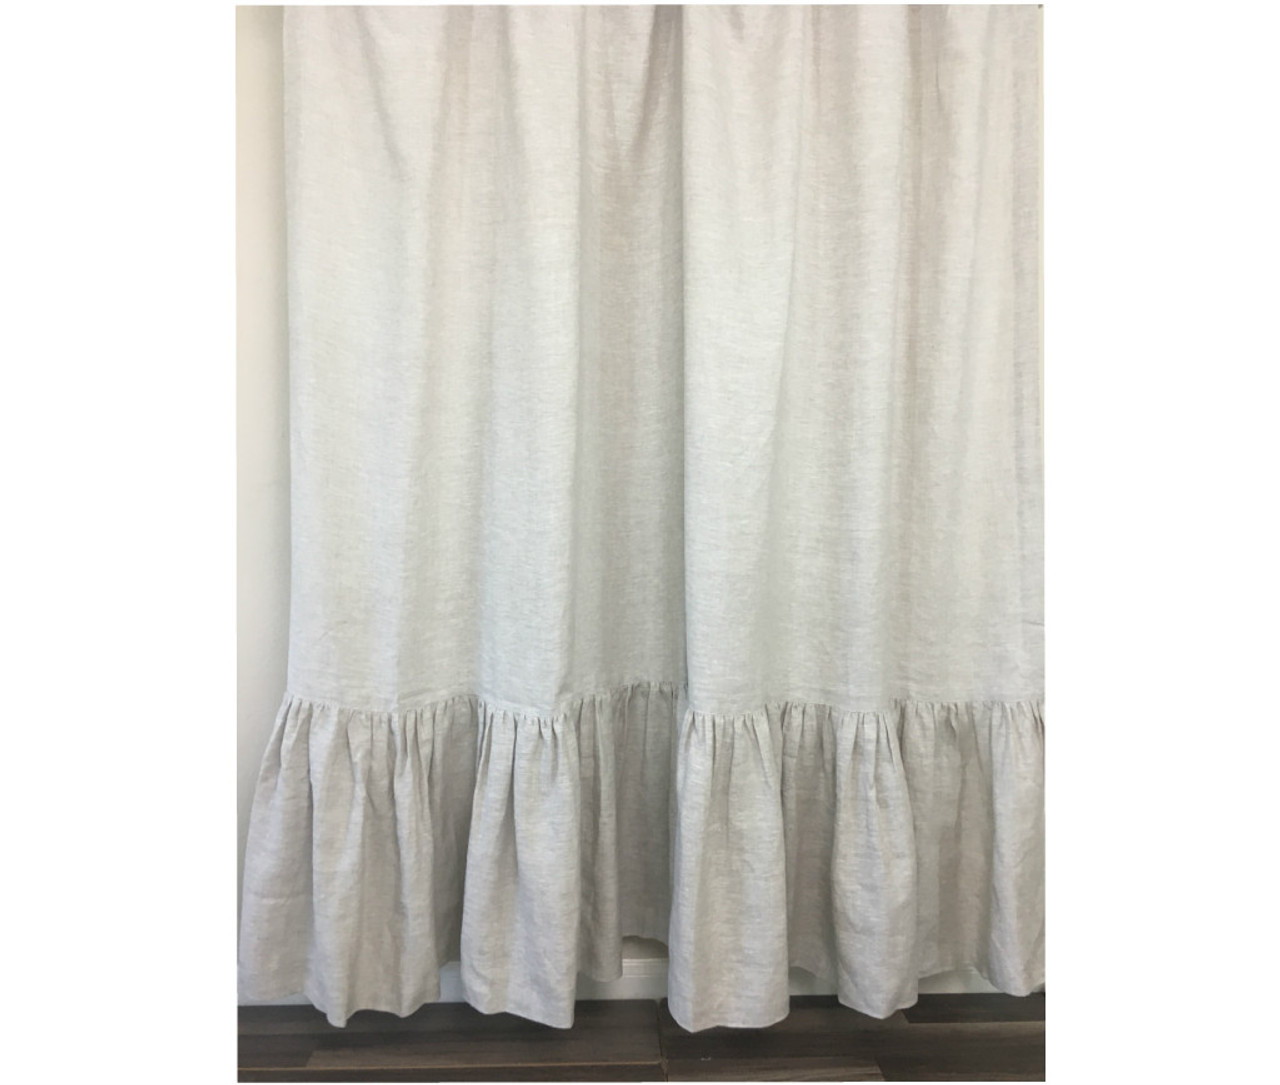 Natural Linen Shower Curtain With Mermaid Long Ruffles Medium Weight Fabric